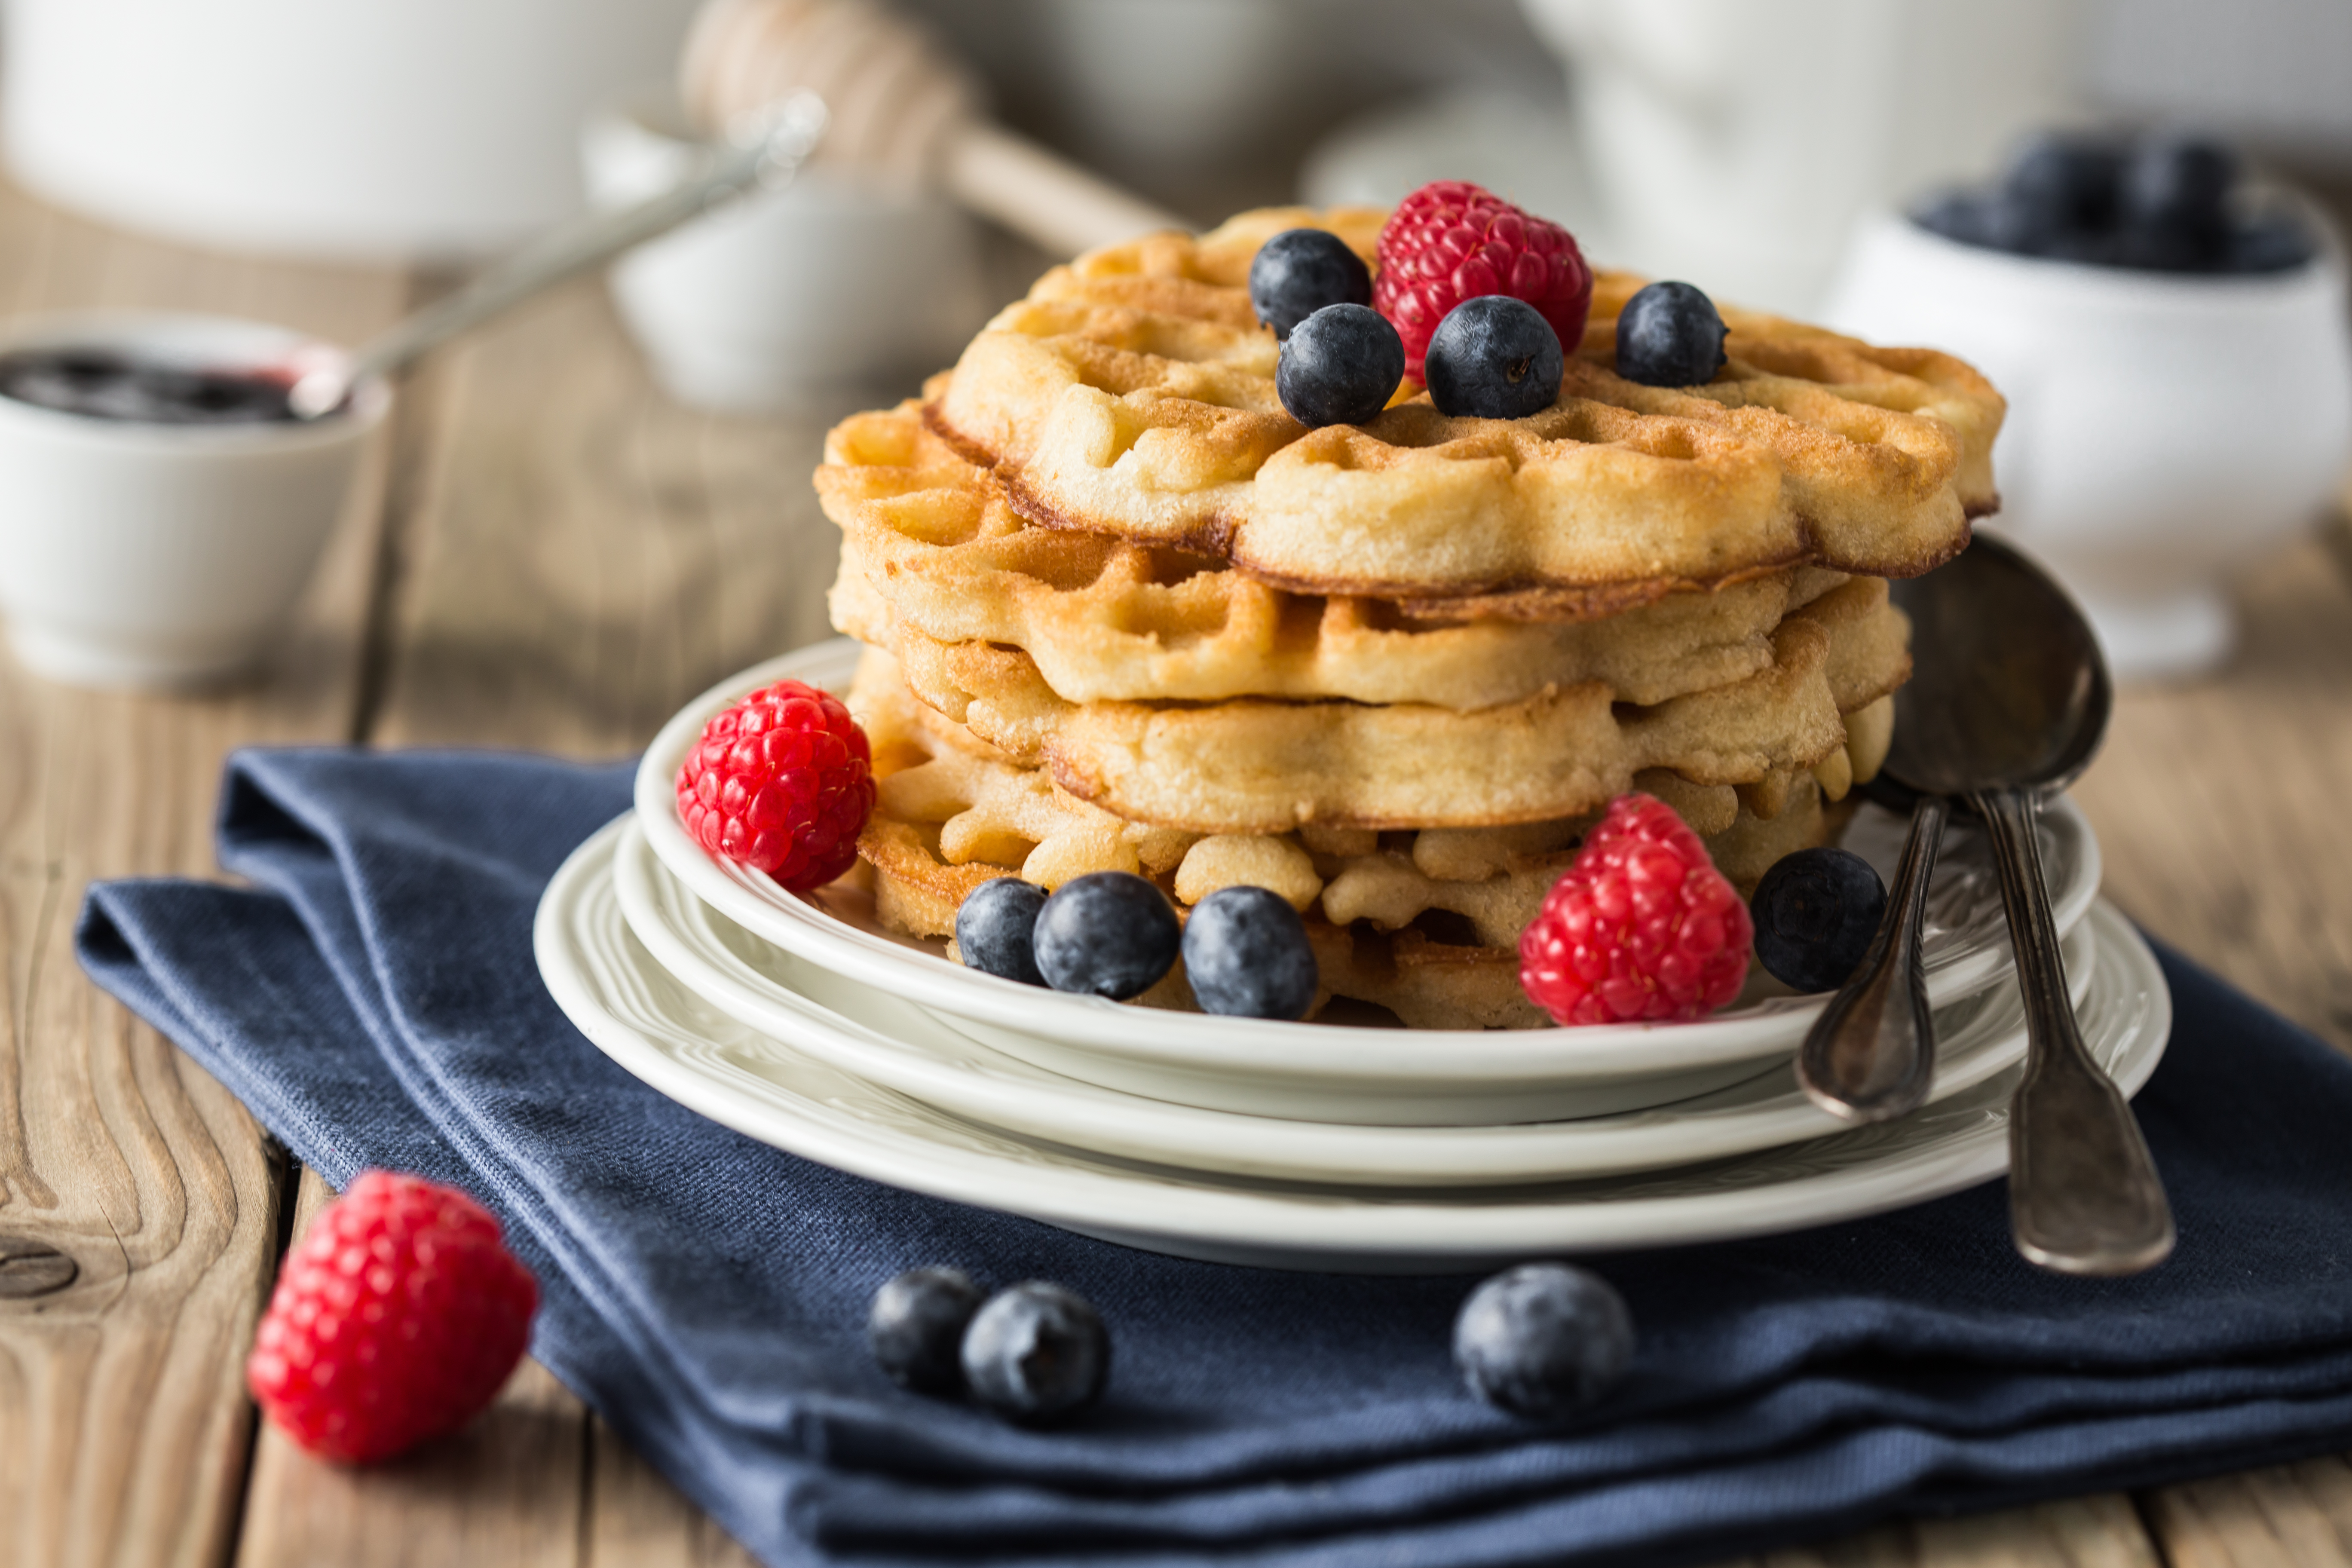 How to Make Bisquick Waffles Without Eggs | Mom Life